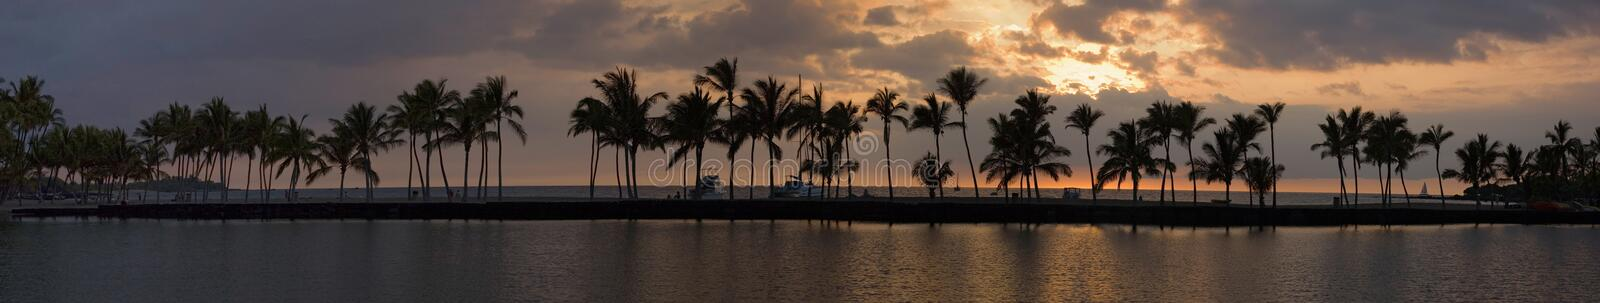 Tropical sunset panorama royalty free stock images